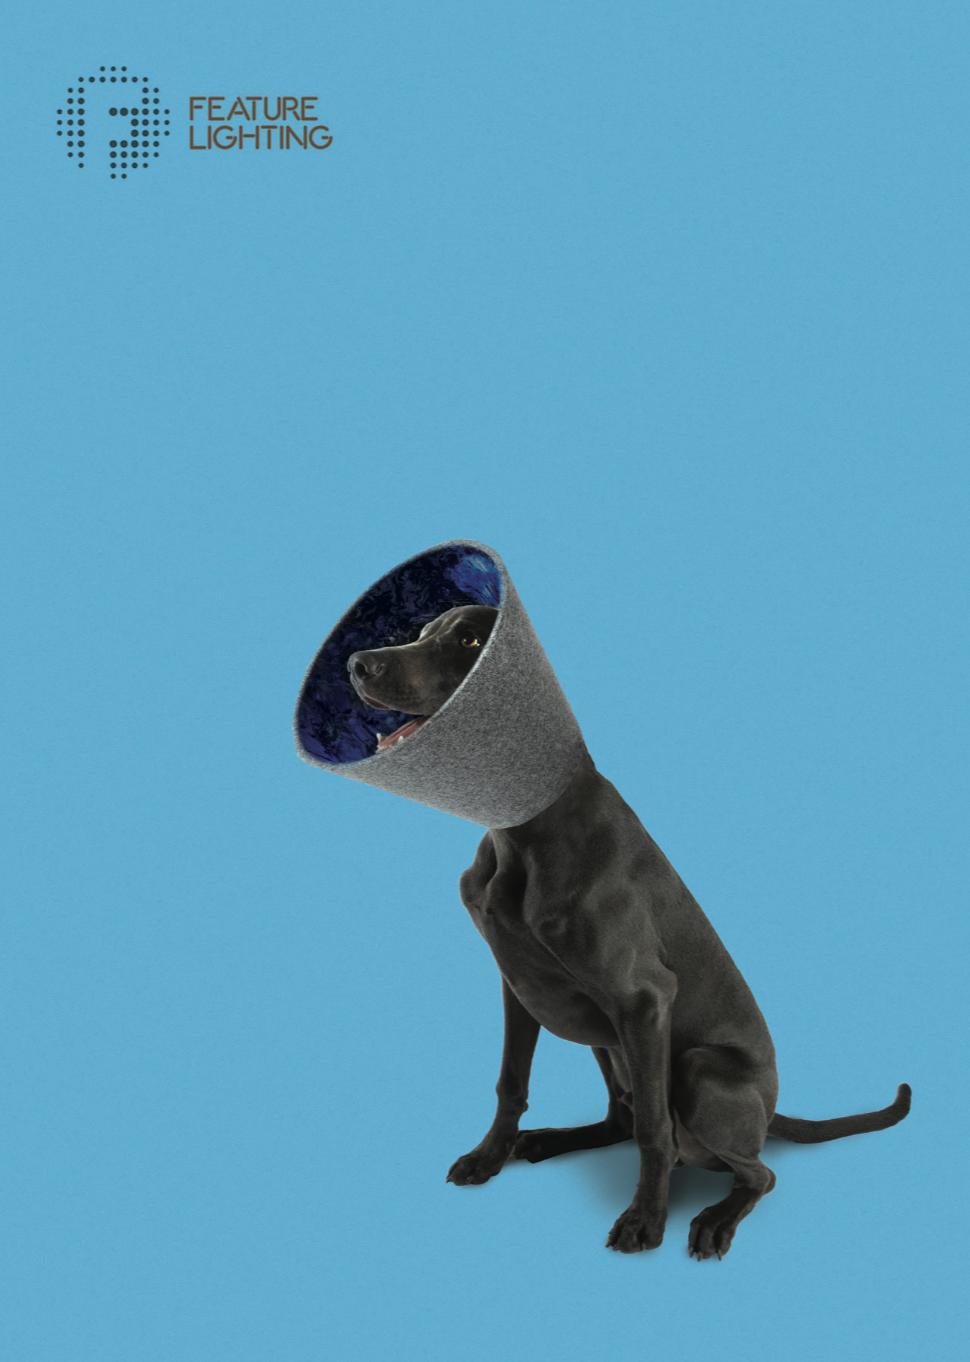 Blu - Doggie Cone of shame lampshades